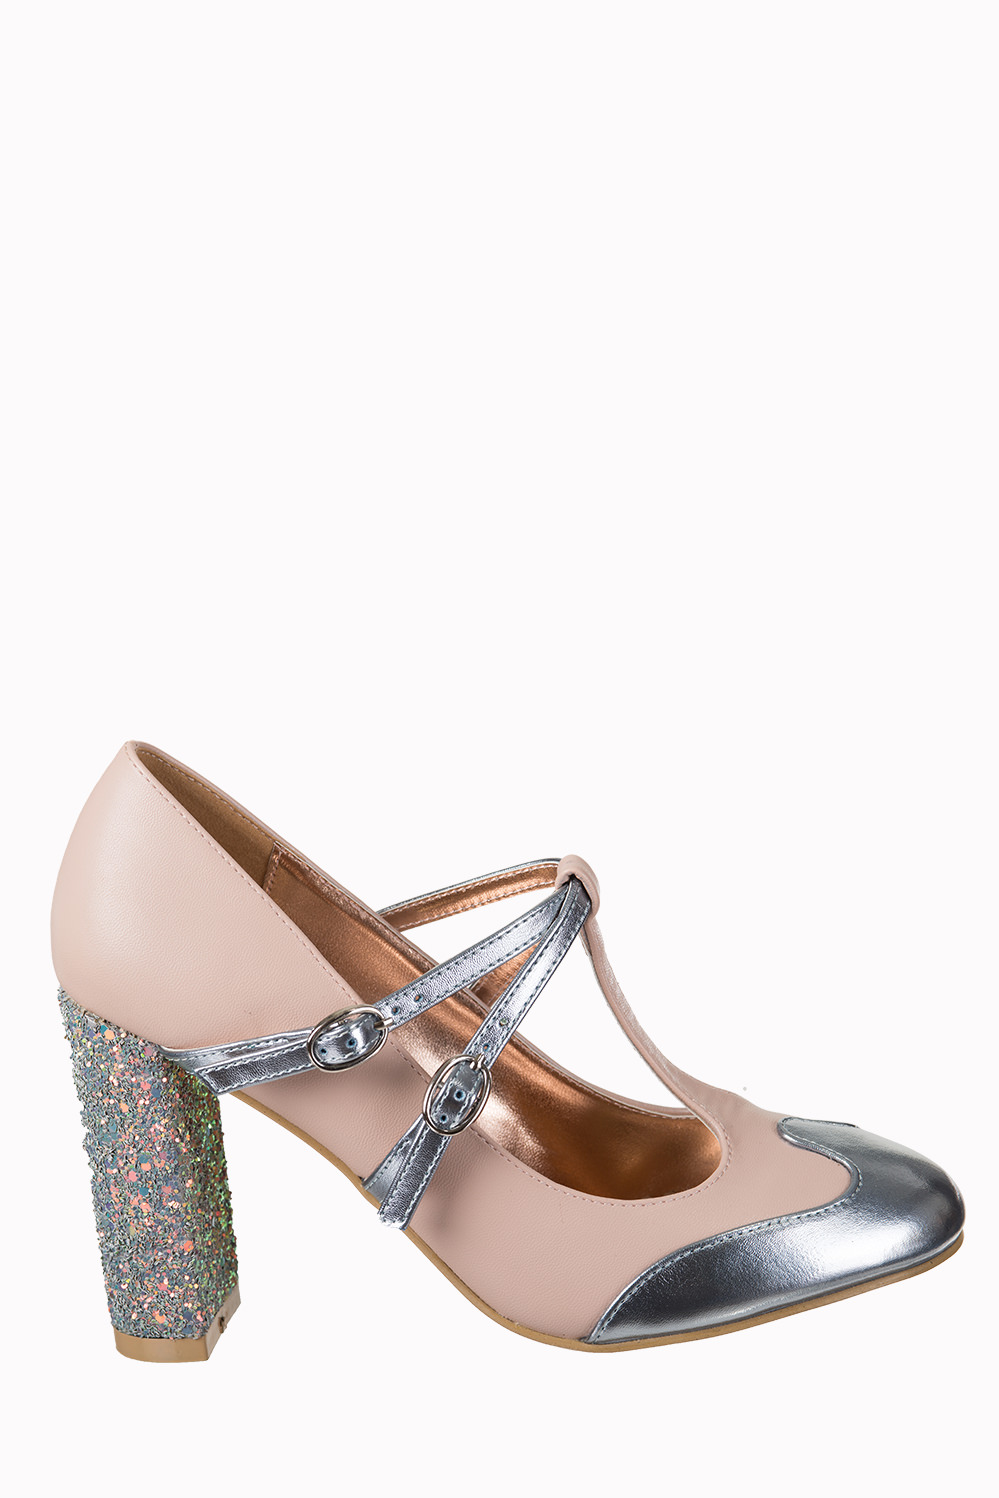 Dancing Days Modern Love 60s Blush Silver Shoes